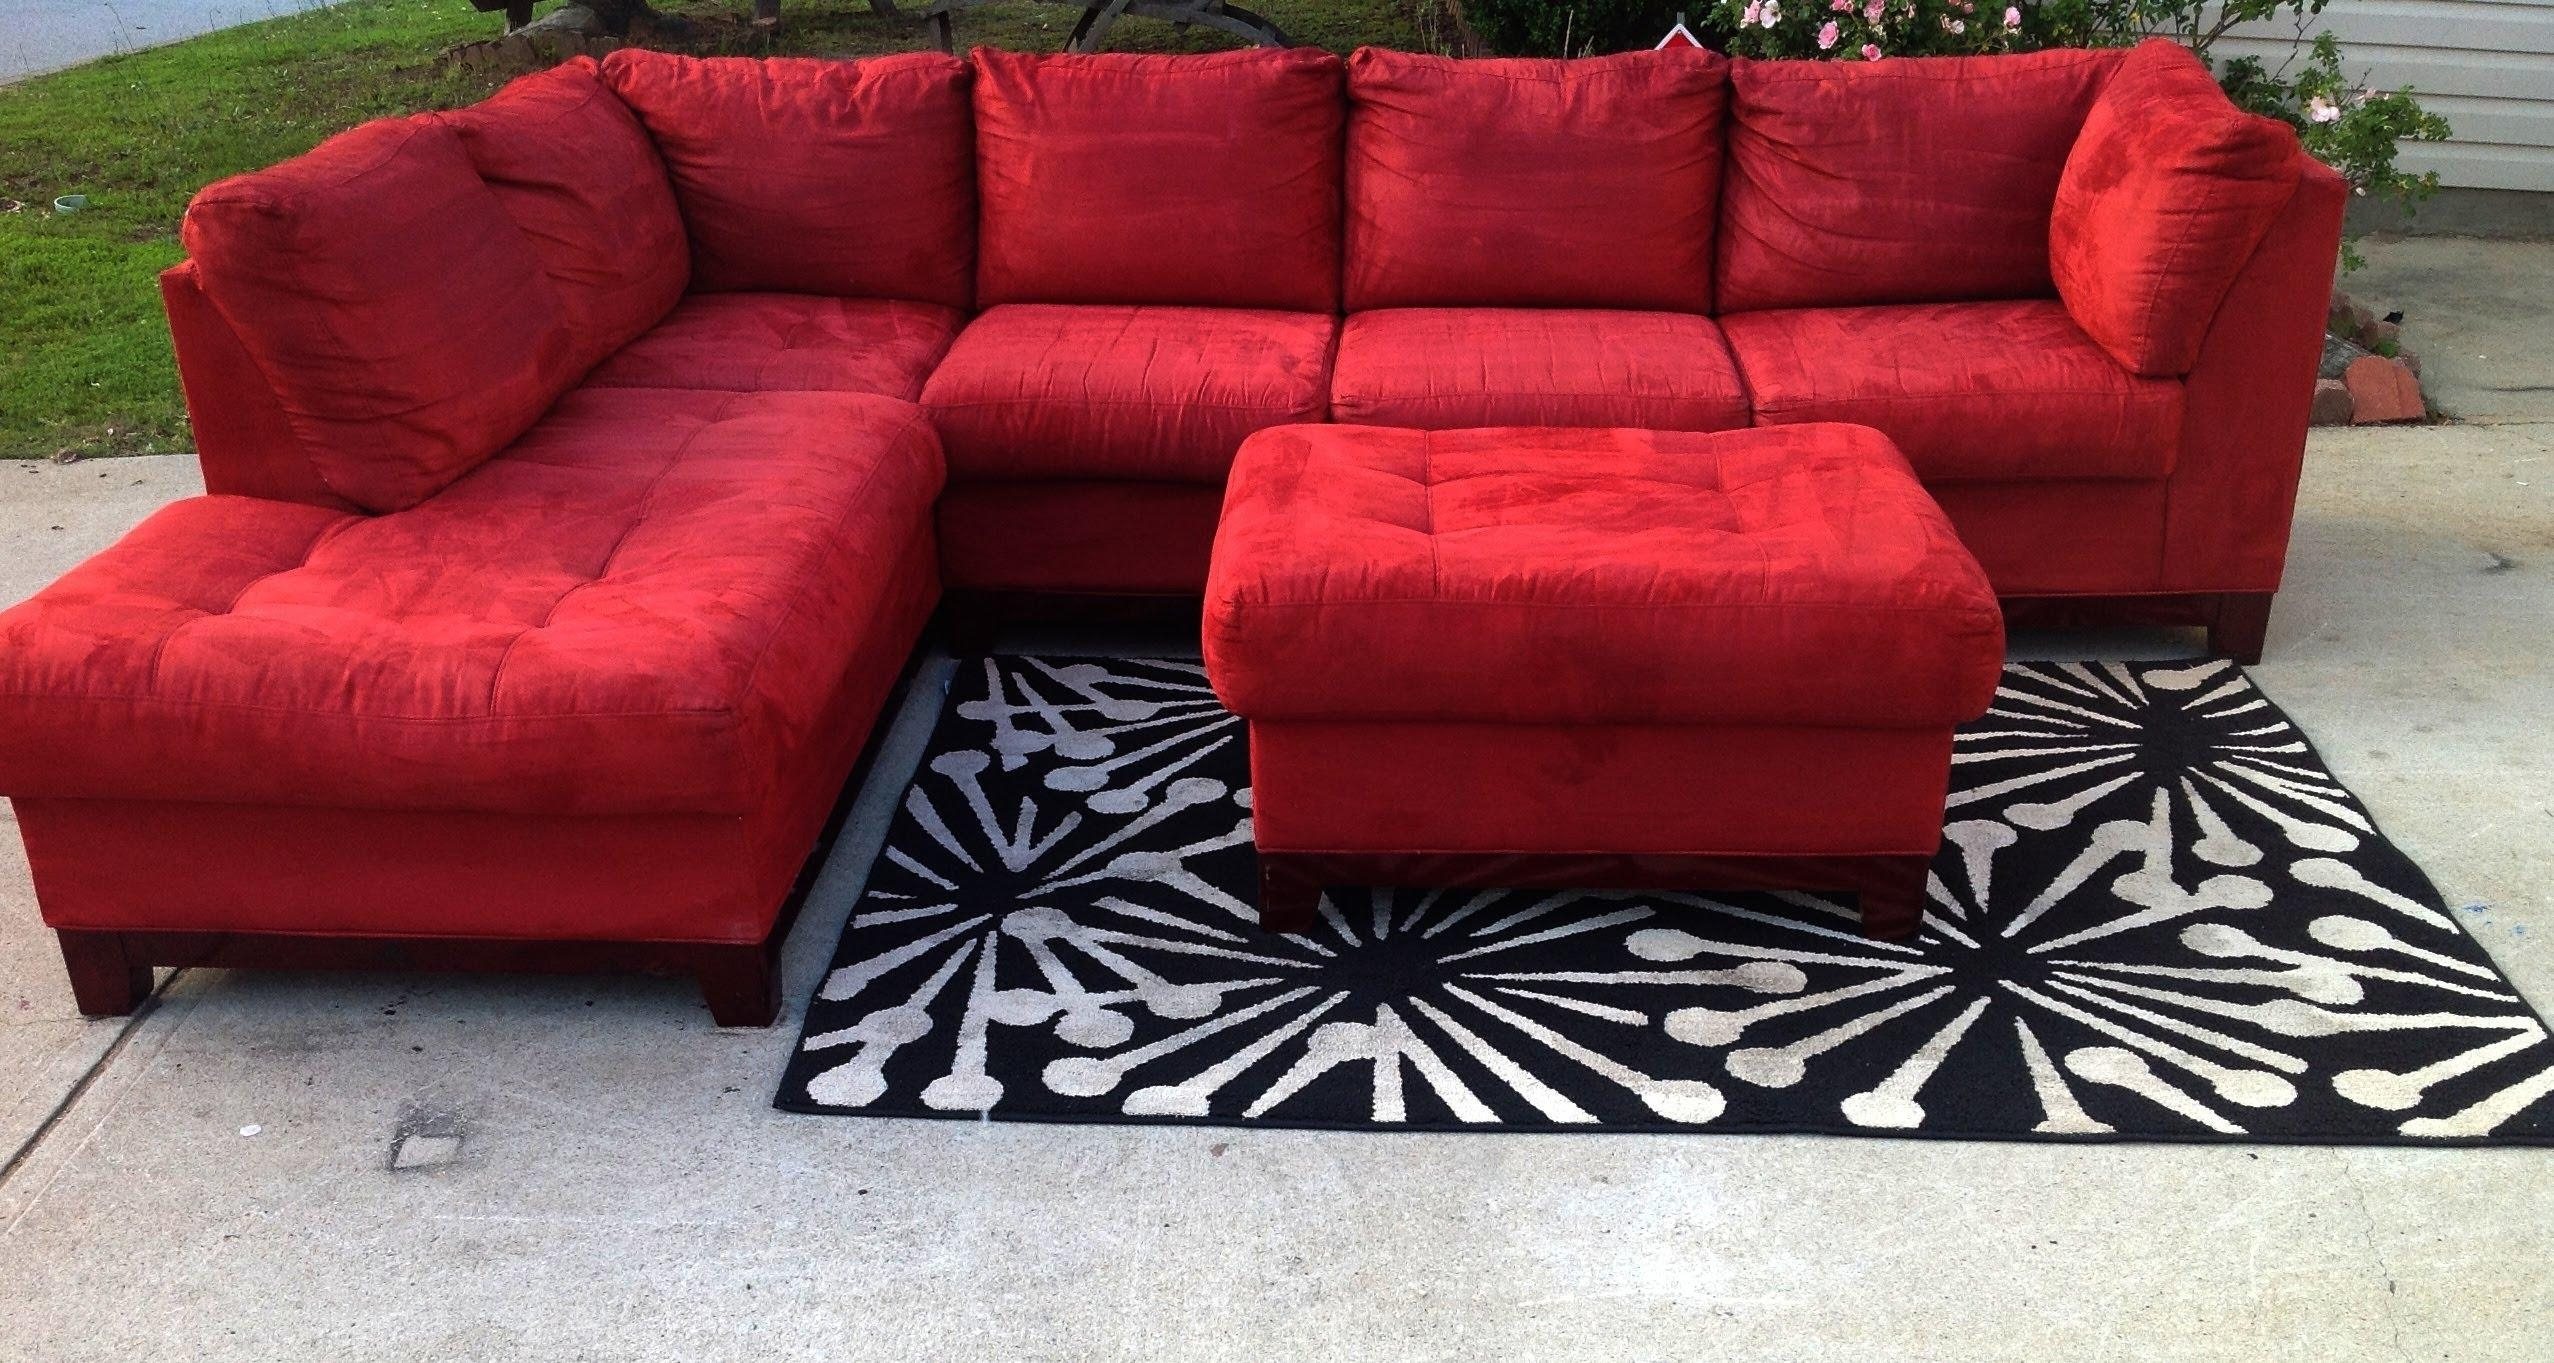 Cindy Crawford Furniture For Sofa — Liberty Interior : Decorate With Regard To Cindy Crawford Sectional Sofas (View 8 of 20)